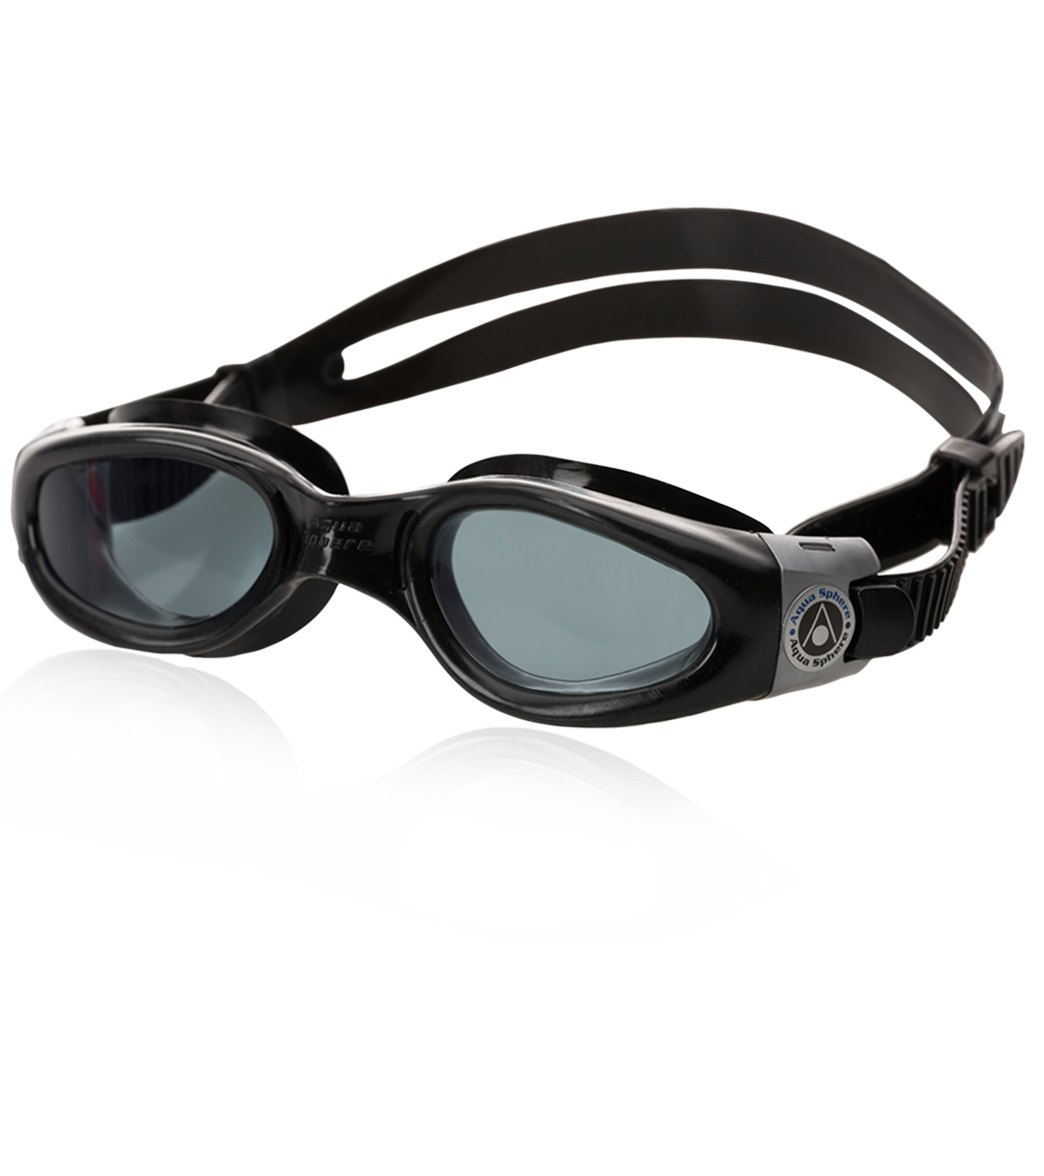 b978ee1ab65c Aqua Sphere Kaiman Goggle Small Fit Smoke Lens at SwimOutlet.com